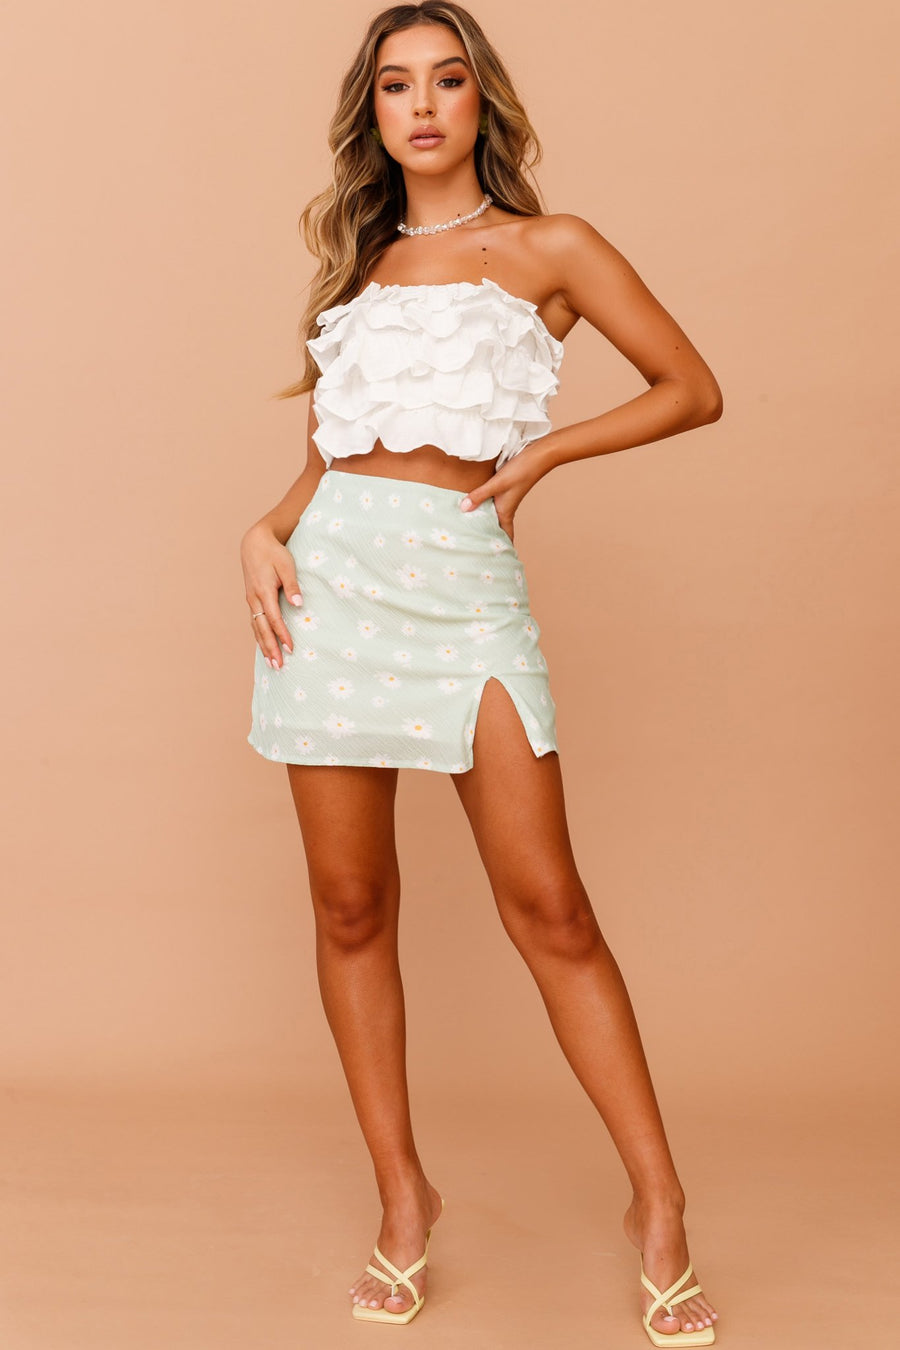 Ruffled Up Tube Top // White | Sage and Paige.?id=25072210542761